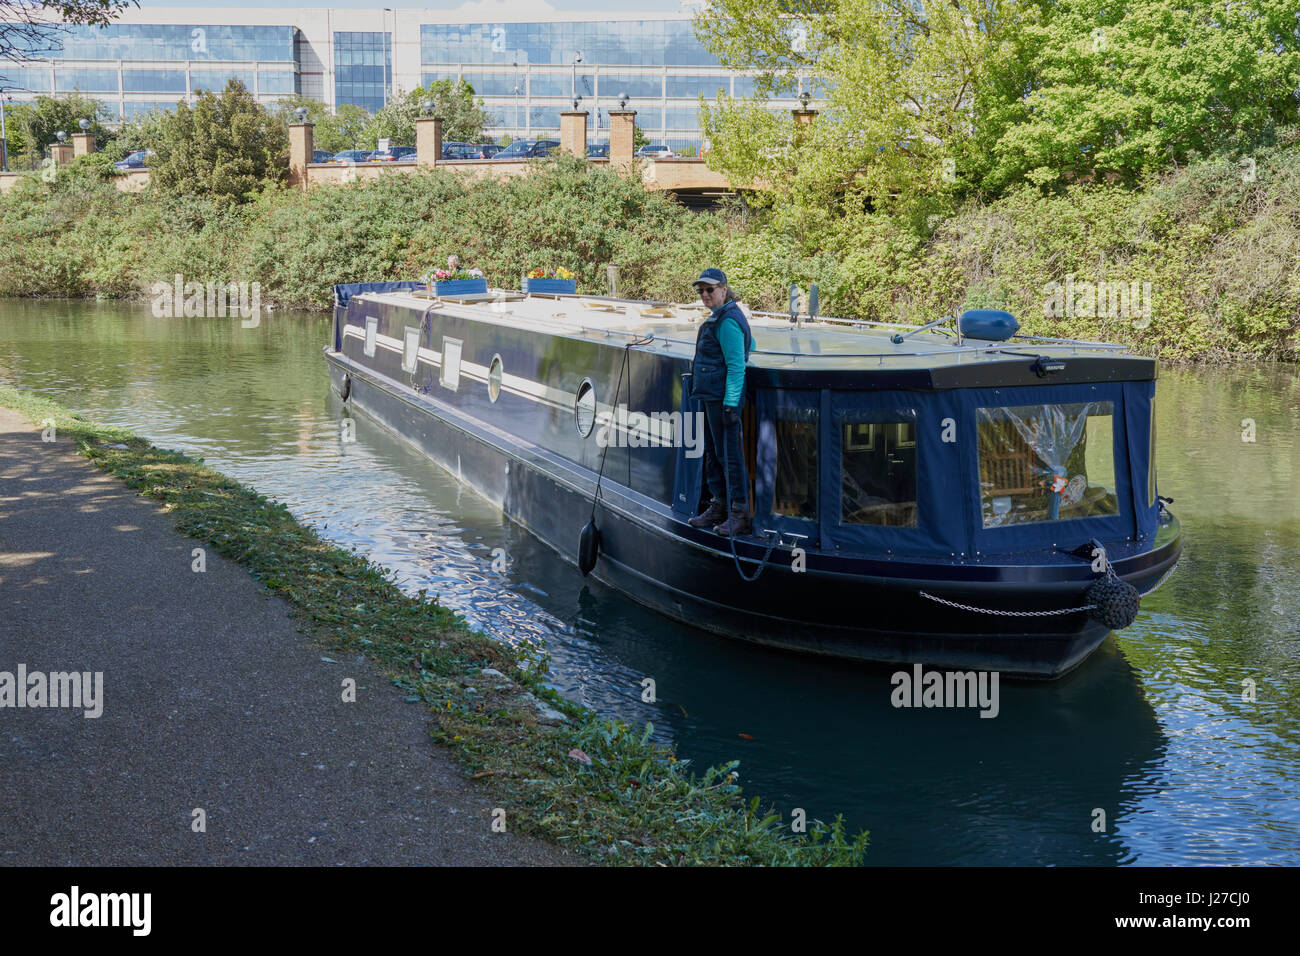 Canal boat being moored on the river Brent - Stock Image